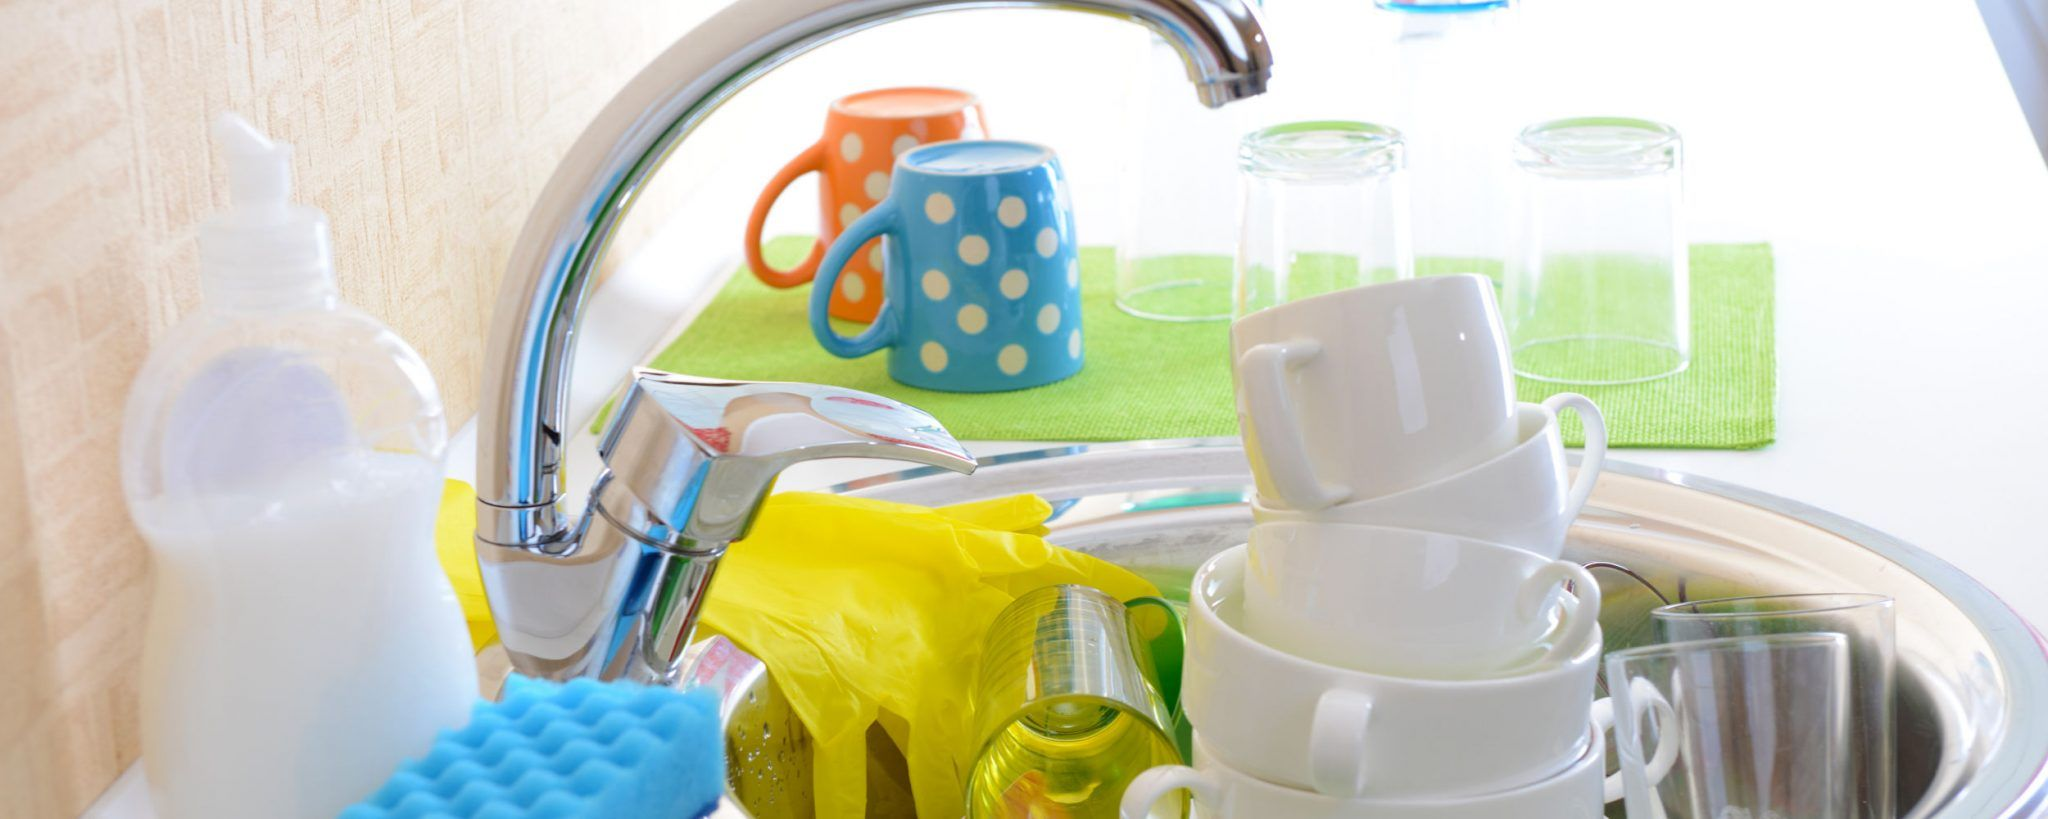 DIY Dish Soap That Actually WORKS It's Simple, No